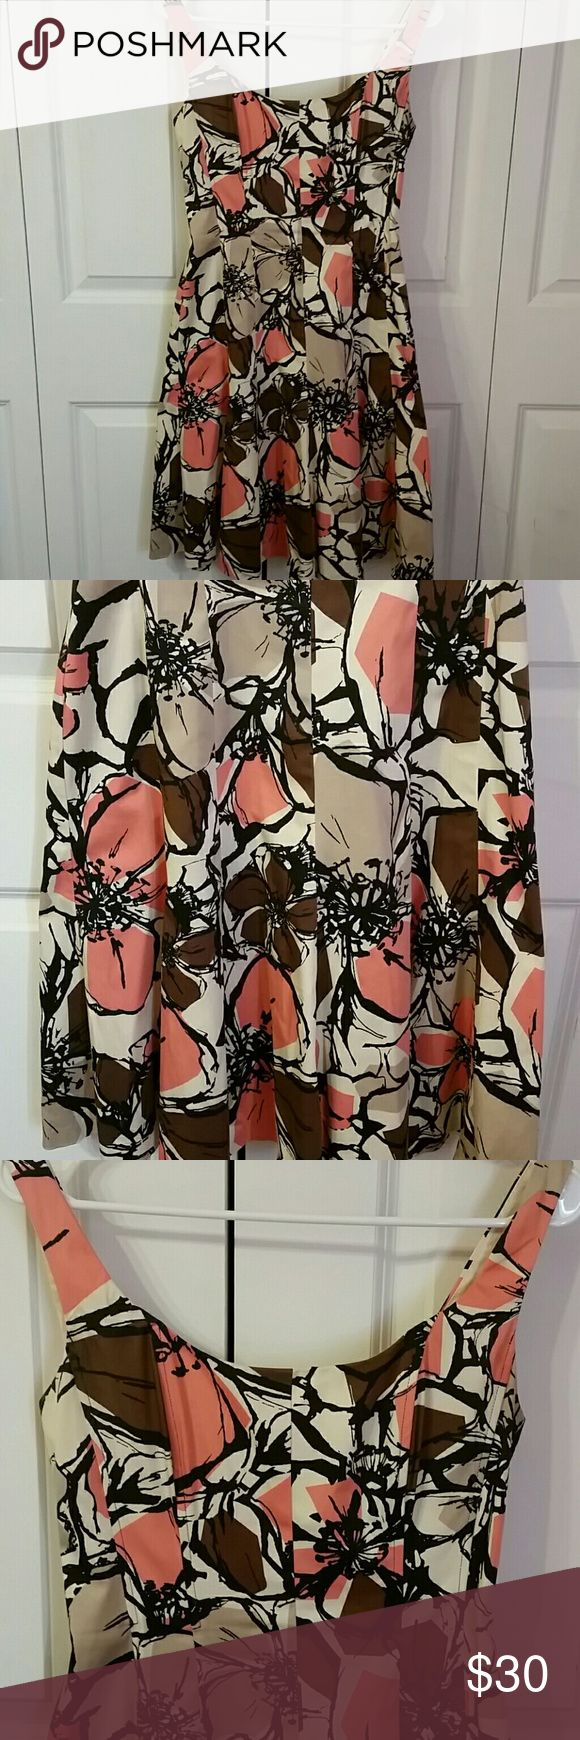 Oh SUNNY DAYS! Perfect Spring and Summer time sundress,  Awesome shades of coral, browns and cream,  beautifully designed and made. Lined so it is NOT SEE THROUGH! BRAND NEW WITHOUT TAG Nine West Dresses